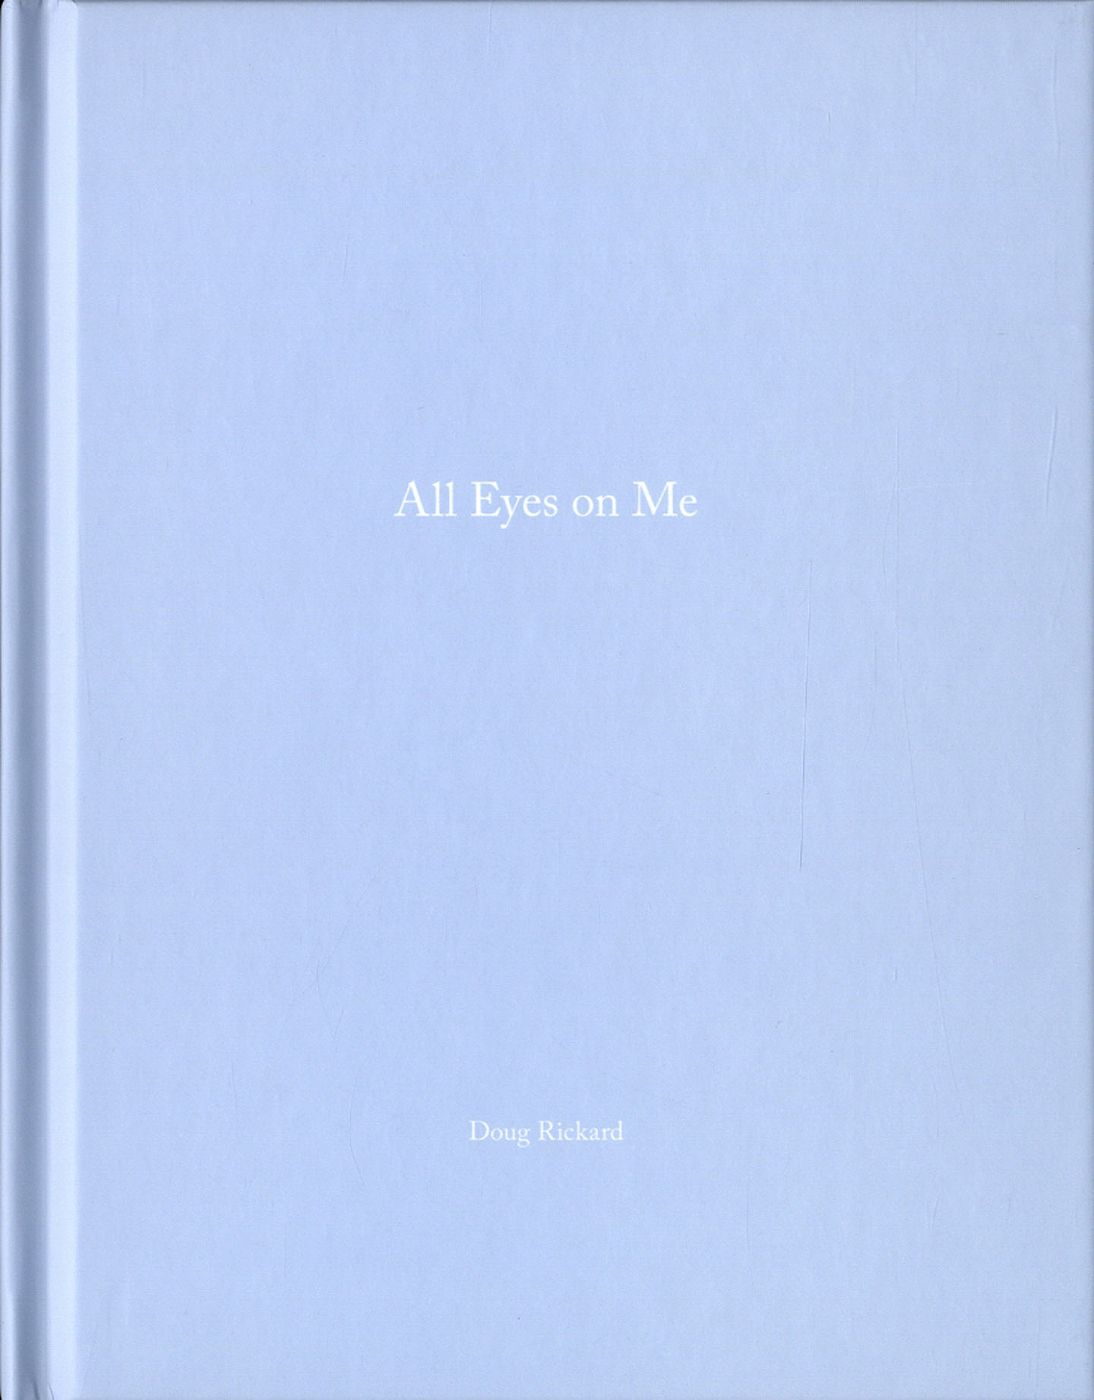 Doug Rickard: All Eyes on Me (One Picture Book #86), Limited Edition (with Polaroid Print)